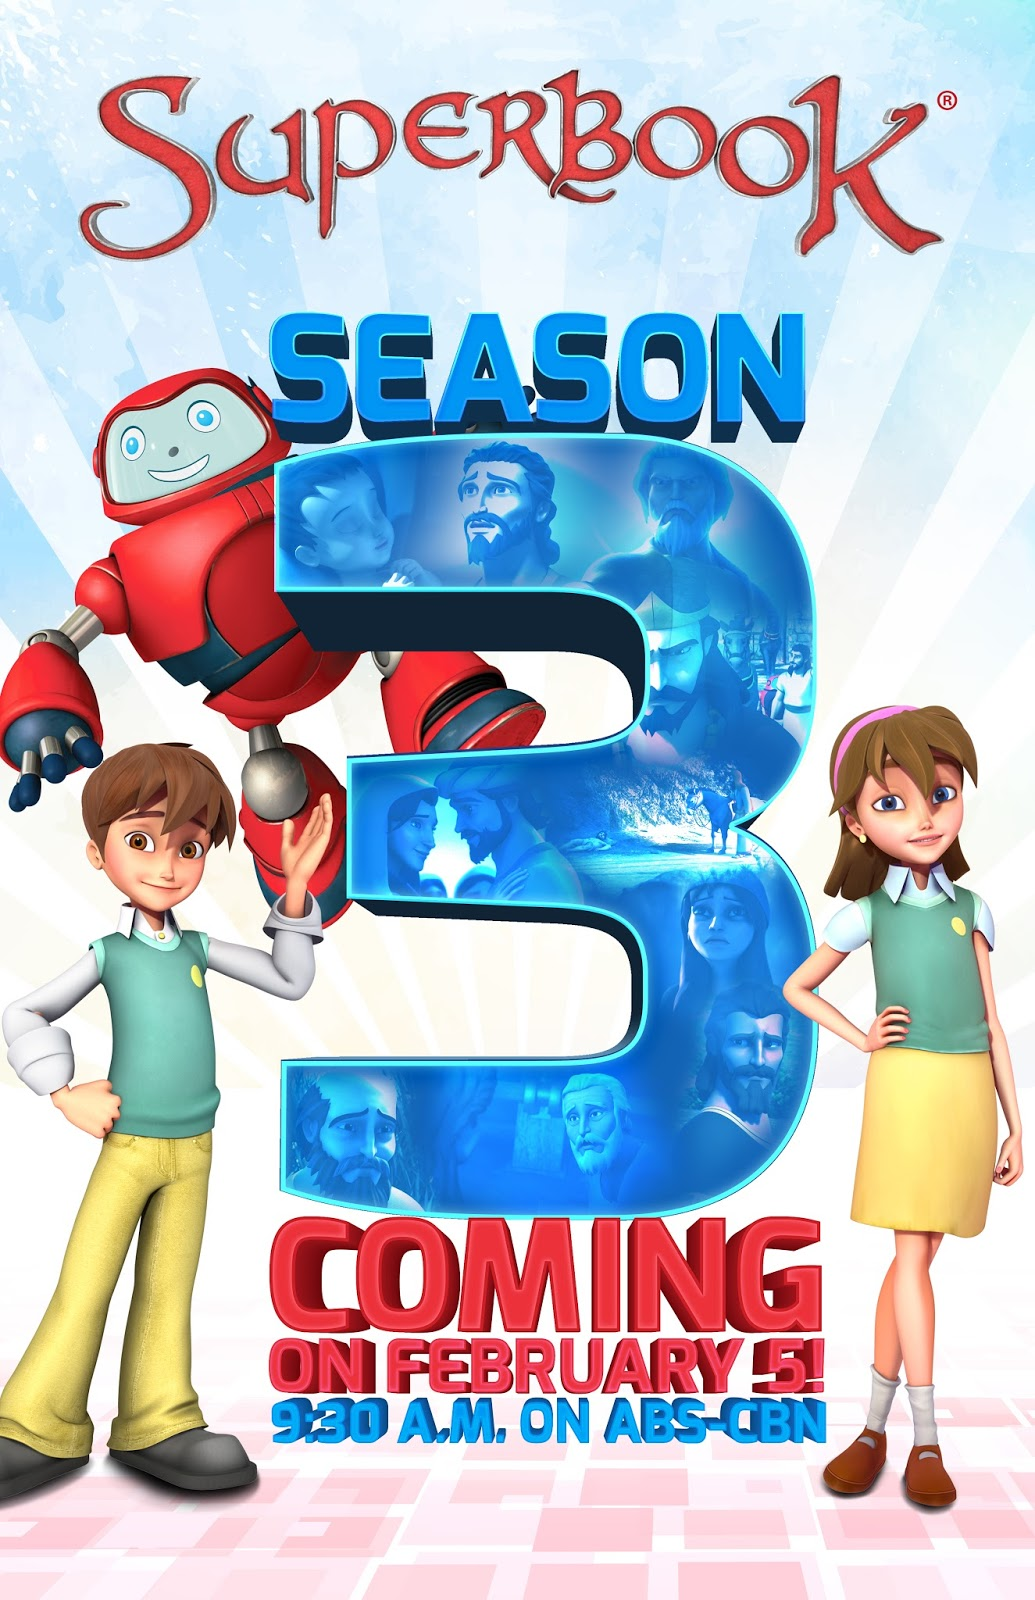 cbn asia launched superbook season 3 wazzup pilipinas news and